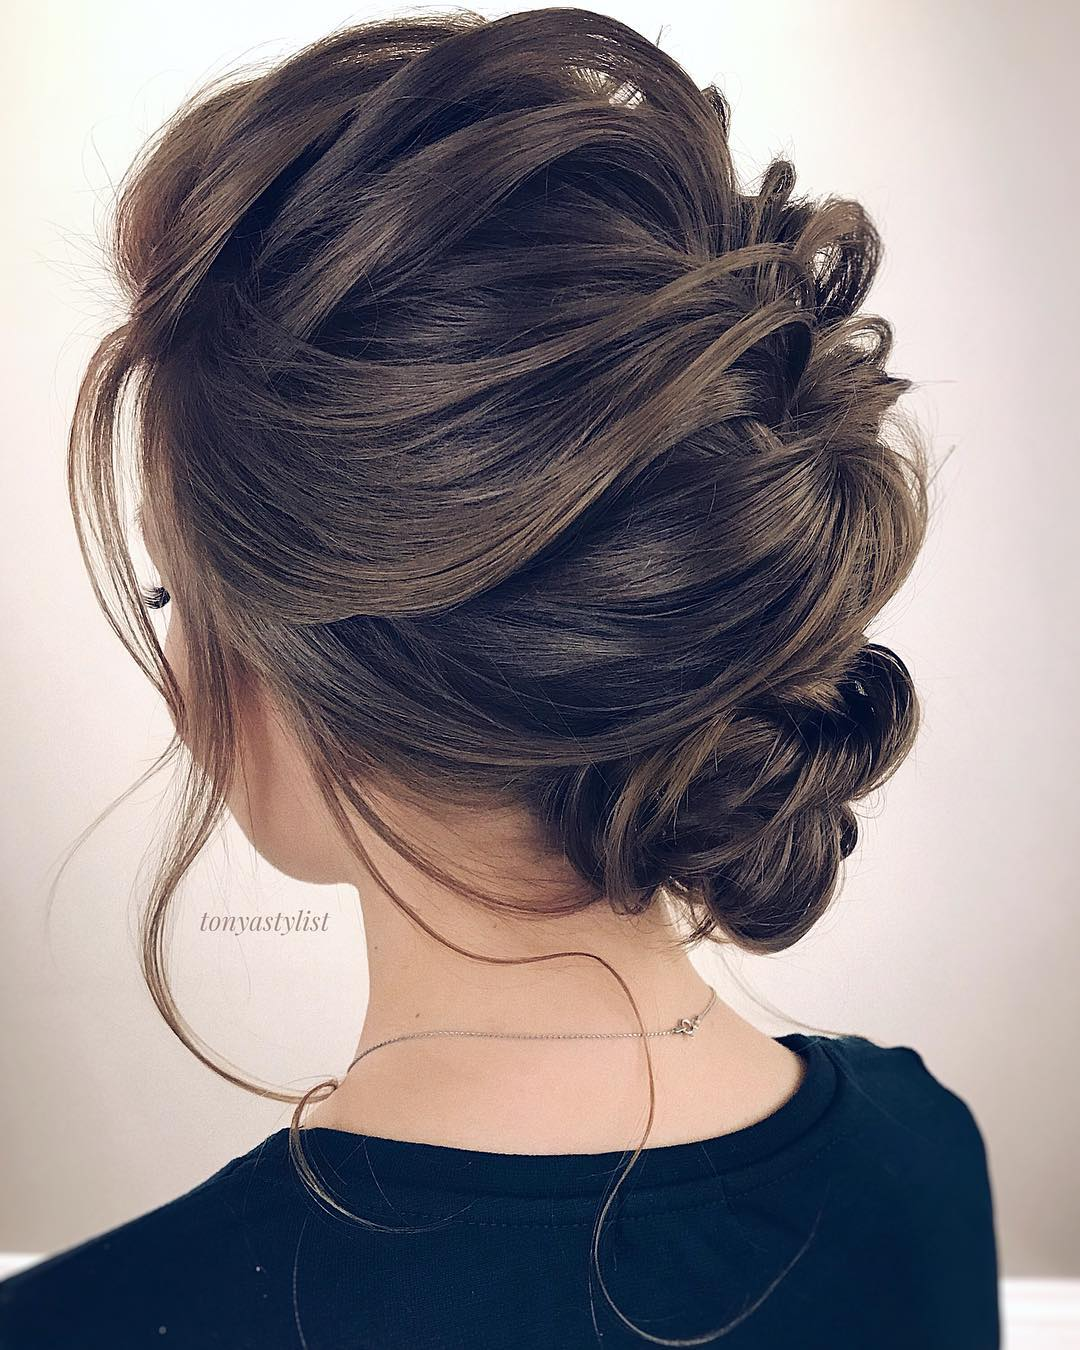 11 Updos for Medium Length Hair - Prom & Homecoming Hairstyle